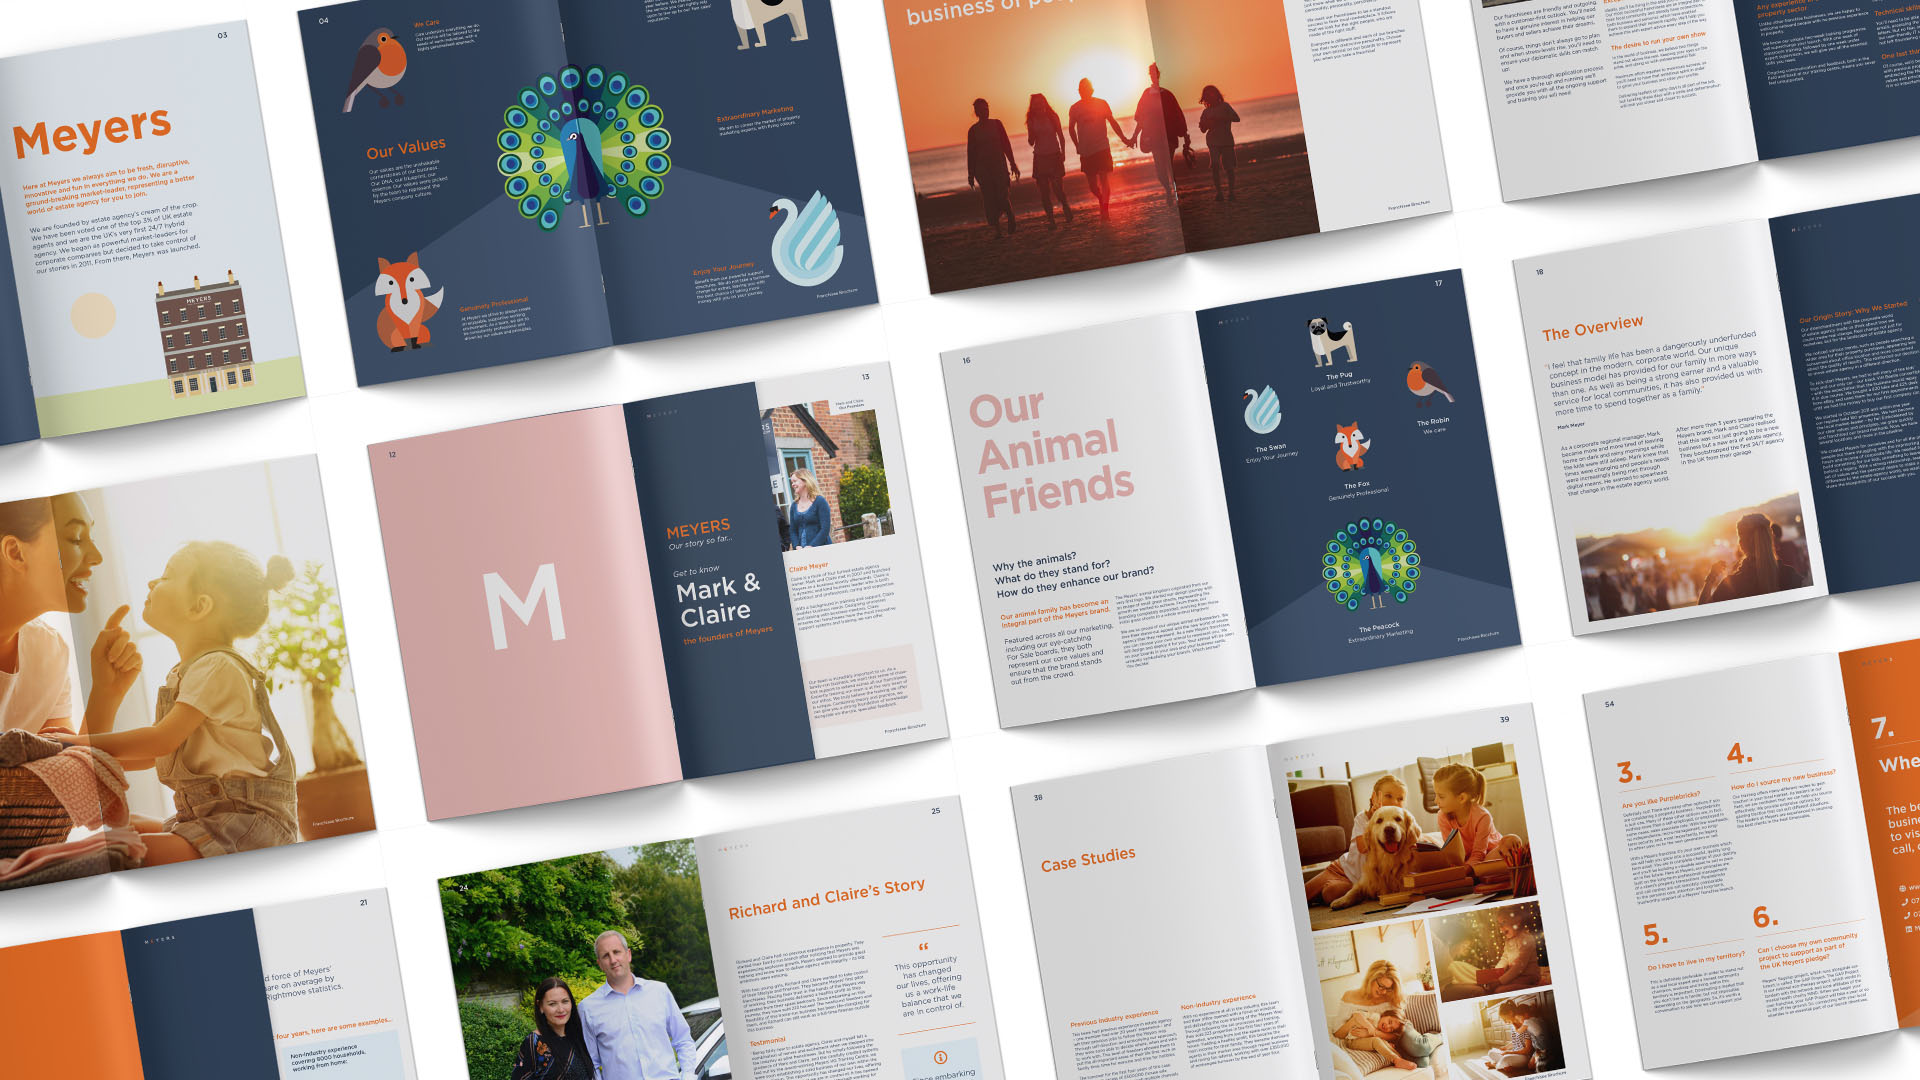 Meyers-brochure-spreads-1920×1080-1